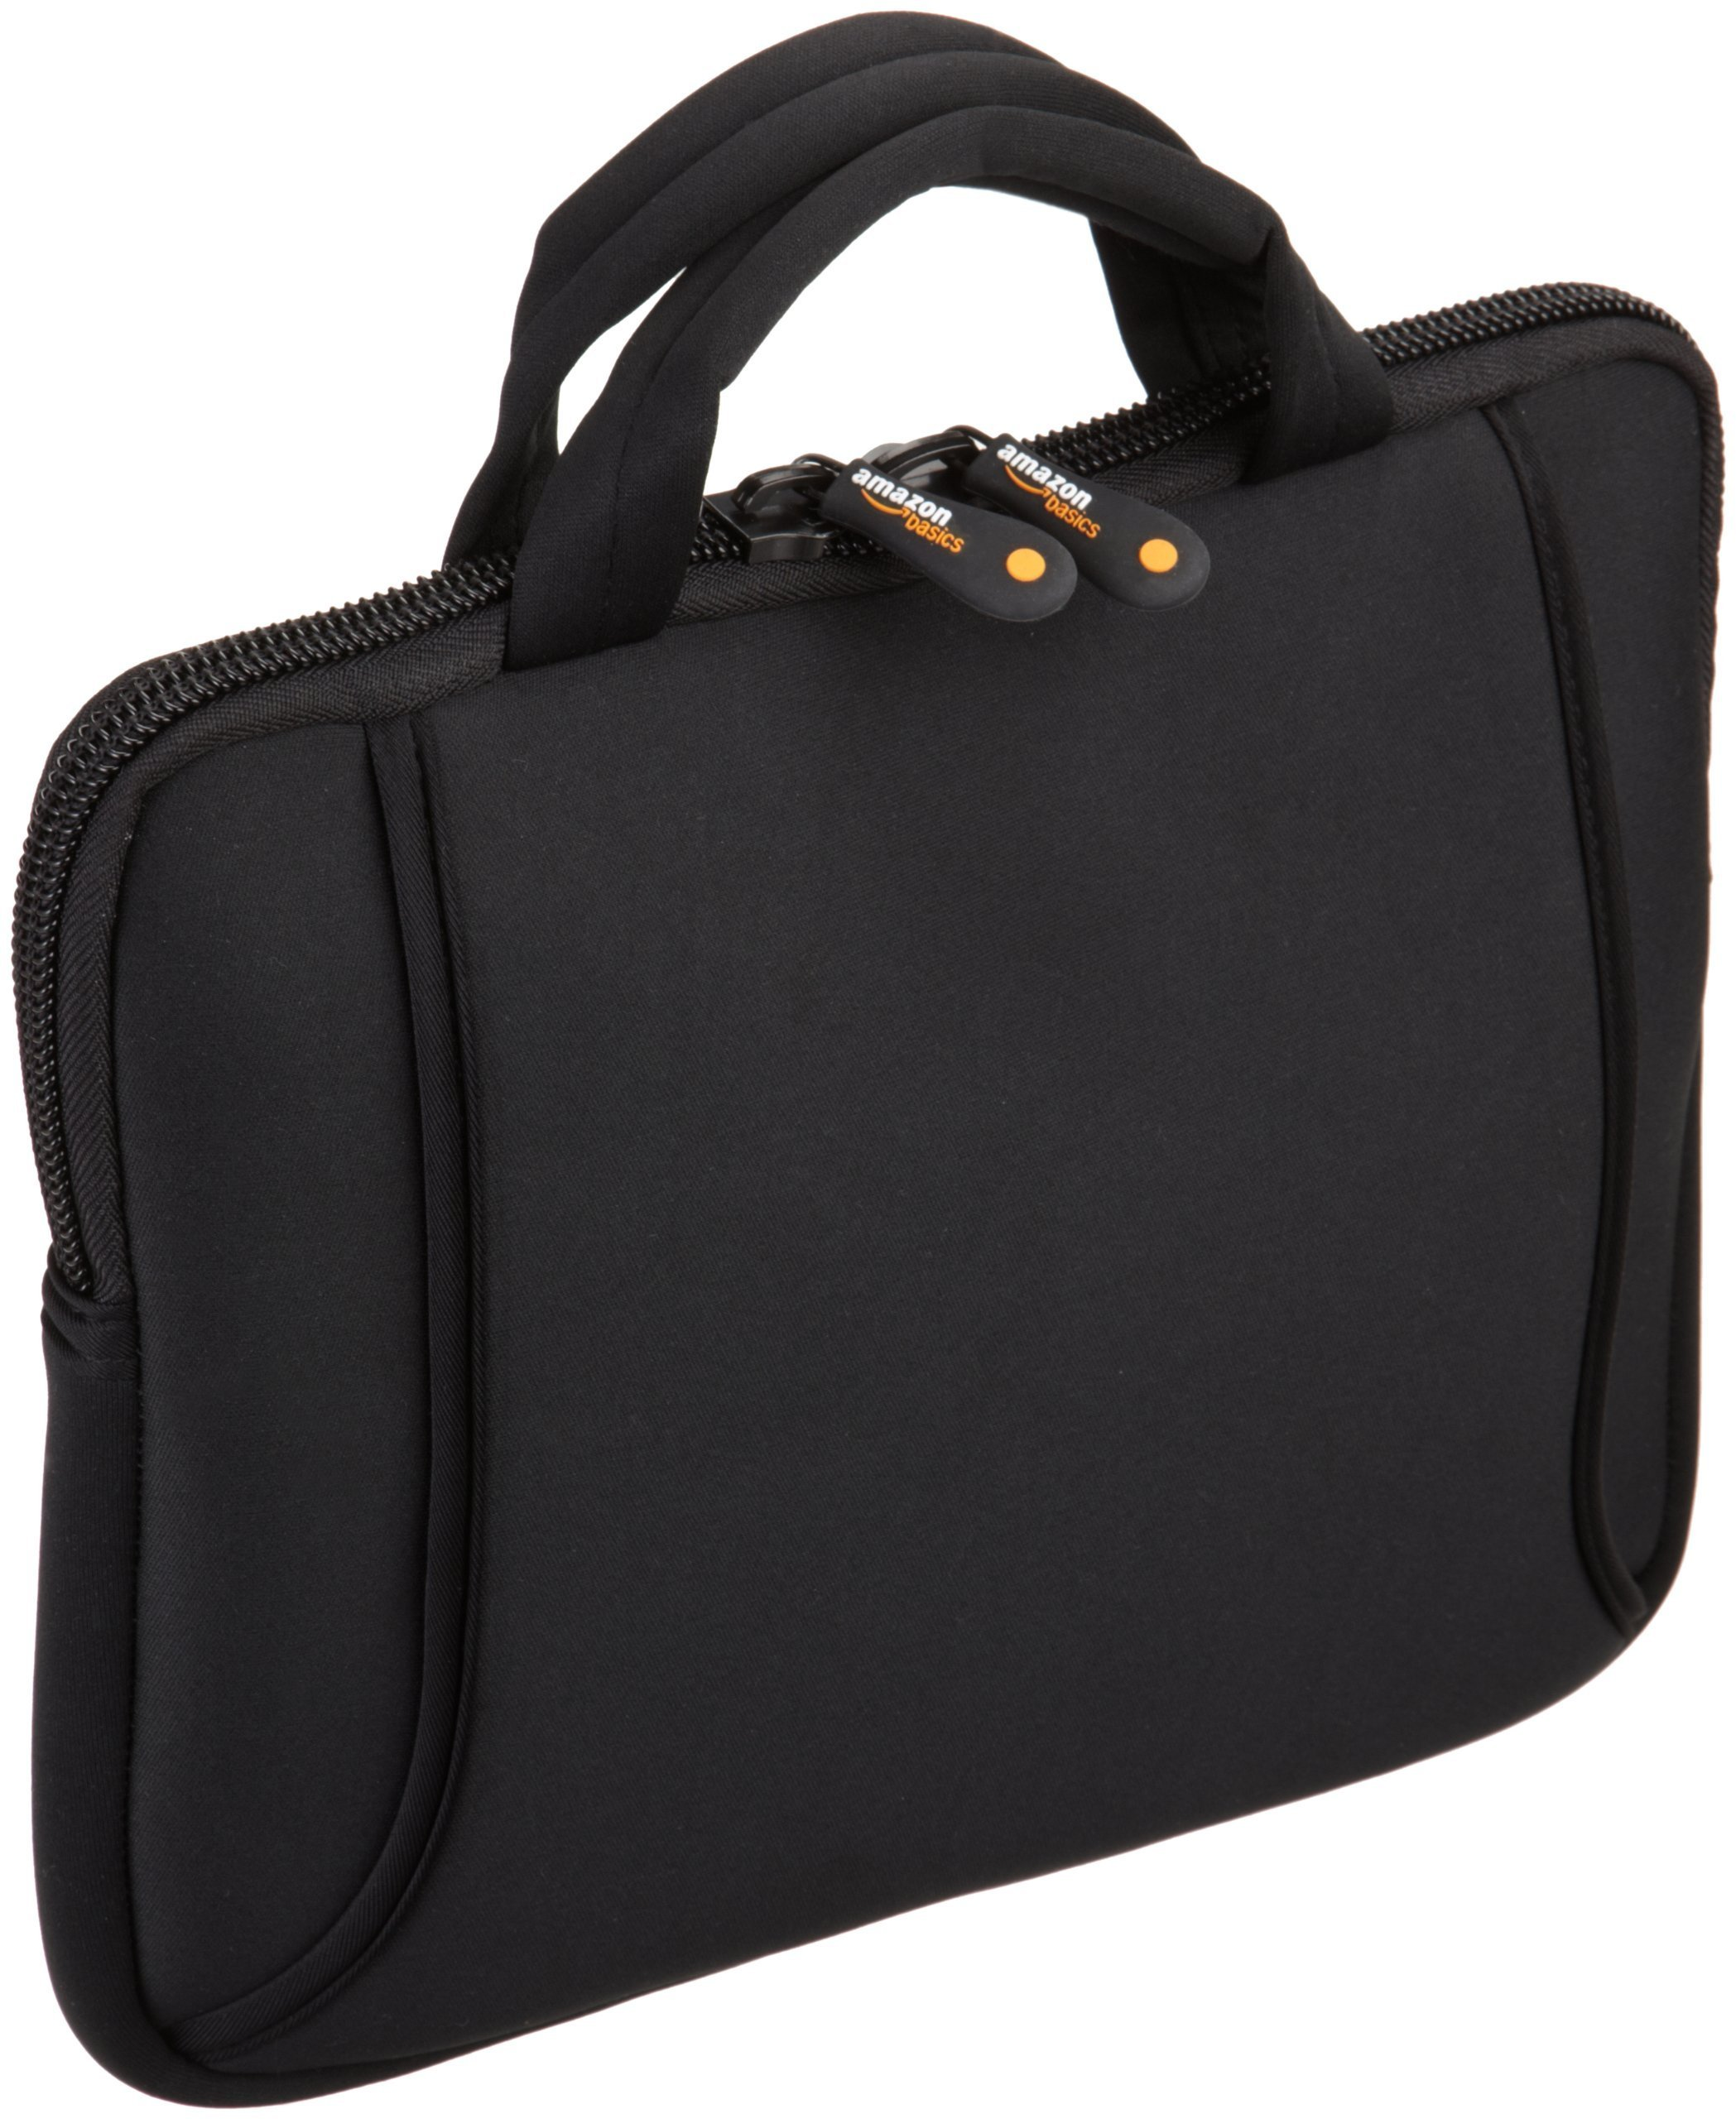 AmazonBasics iPad Air and Netbook Bag with Handle Fits 7 to 10-Inch Tablets (Black) by AmazonBasics (Image #2)